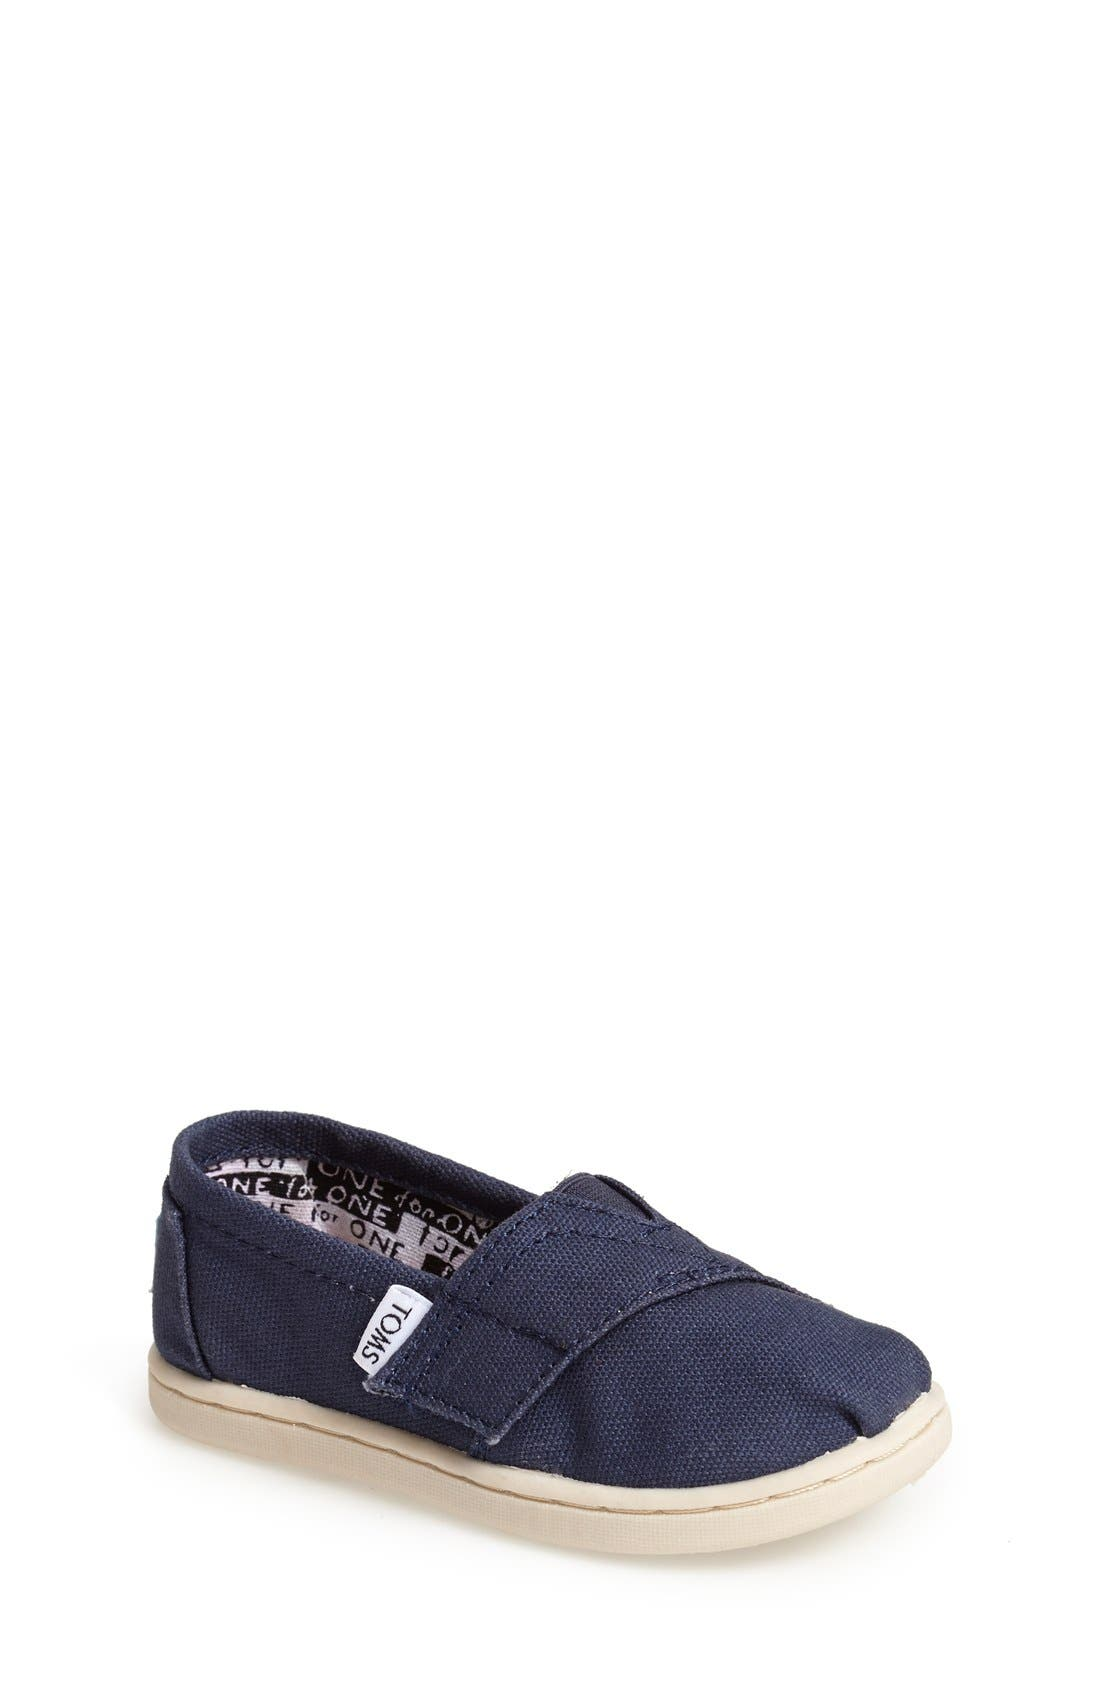 Alternate Image 1 Selected - TOMS 'Classic - Tiny' Slip-On (Baby, Walker & Toddler)